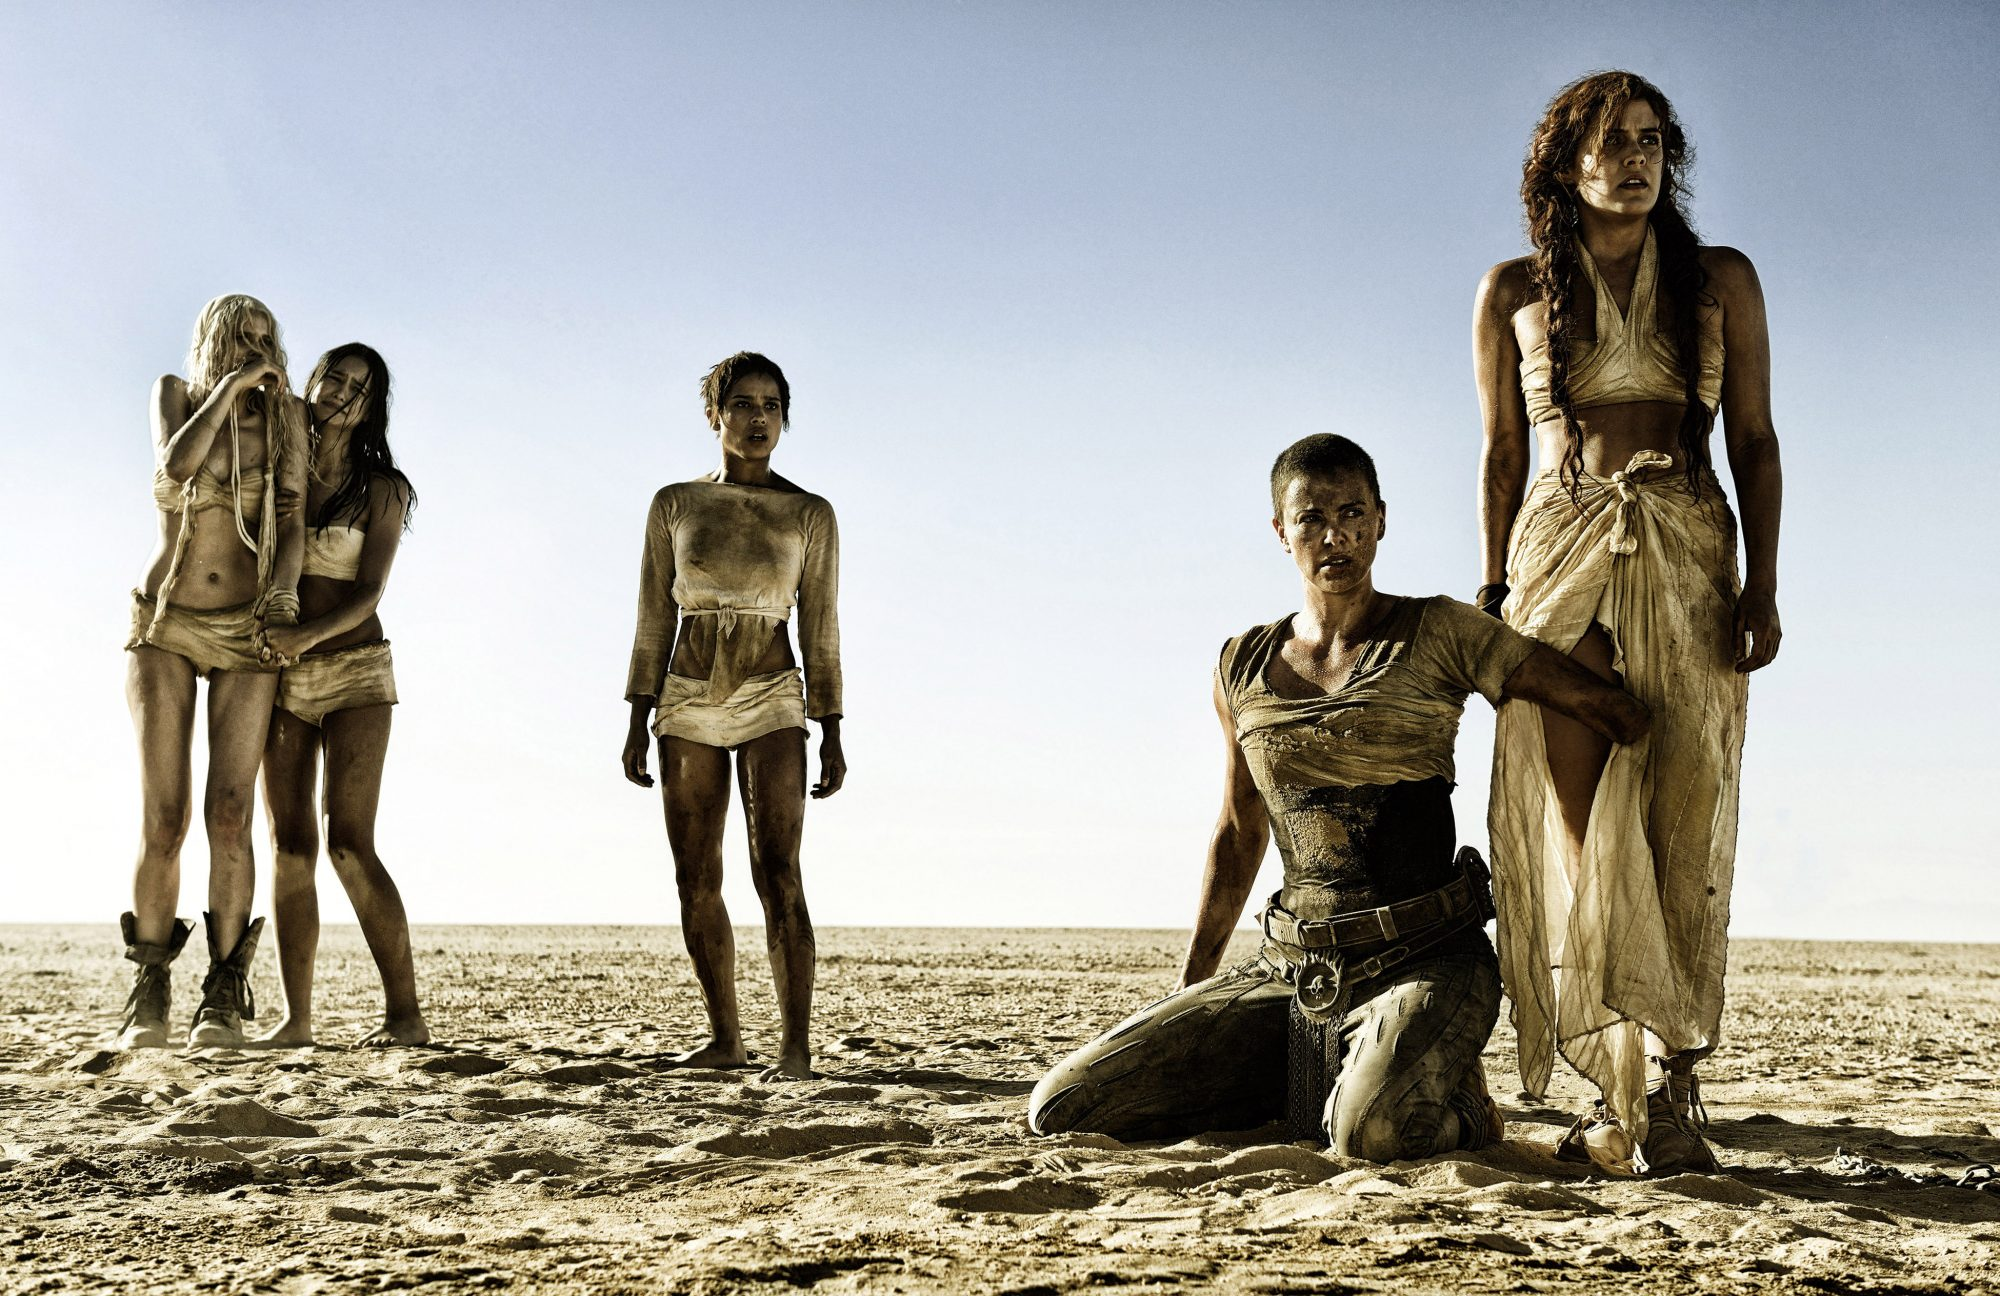 MAD MAX: FURY ROAD, from left: Abbey Lee, Courtney Eaton, Zoe Kravitz, Charlize Theron, Riley